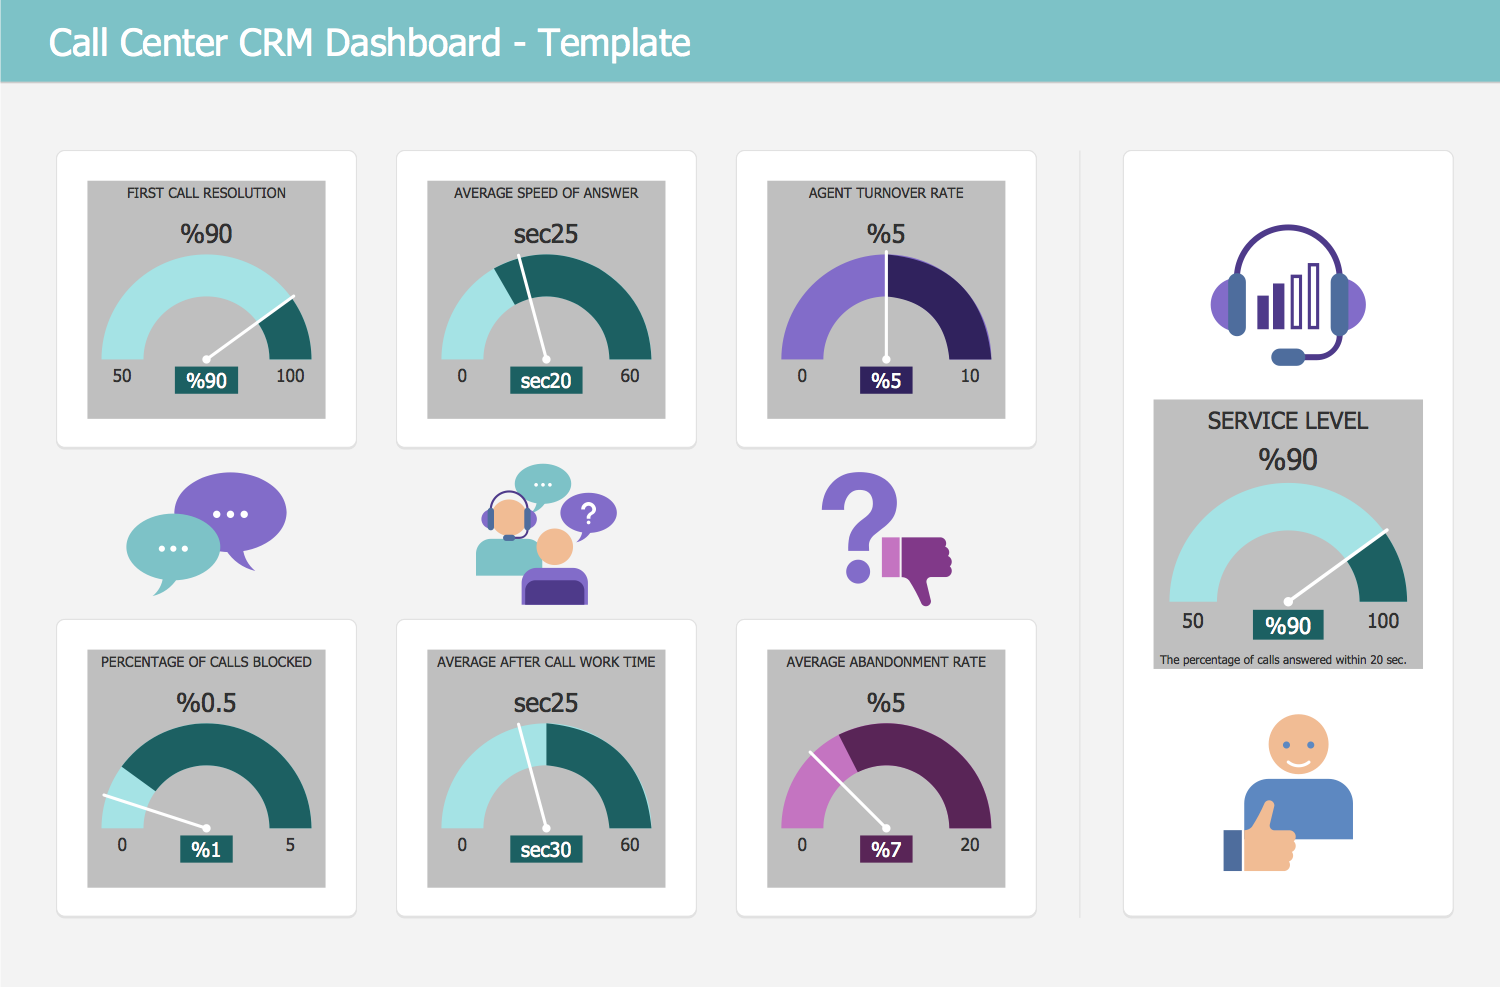 Call Center CRM Dashboard Template